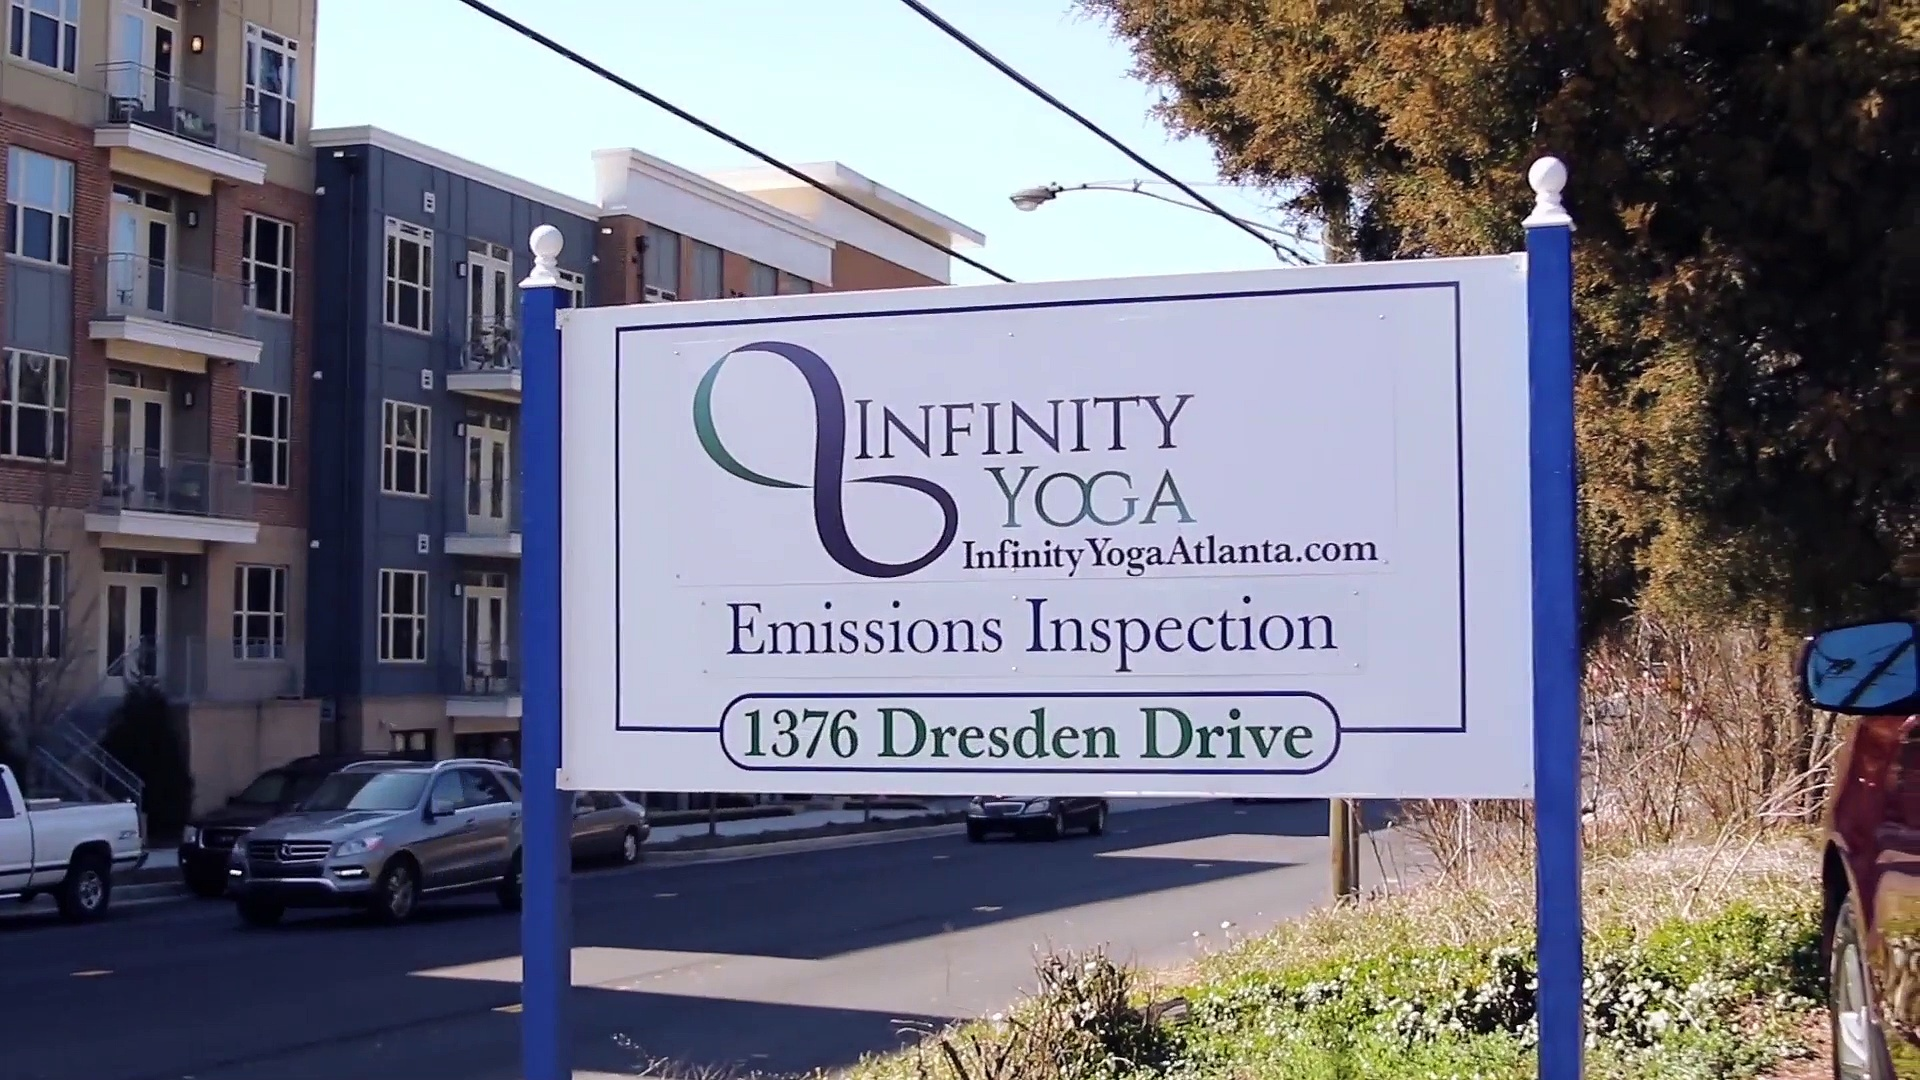 Infinity Yoga Featured on Atlanta Multisport Magazine